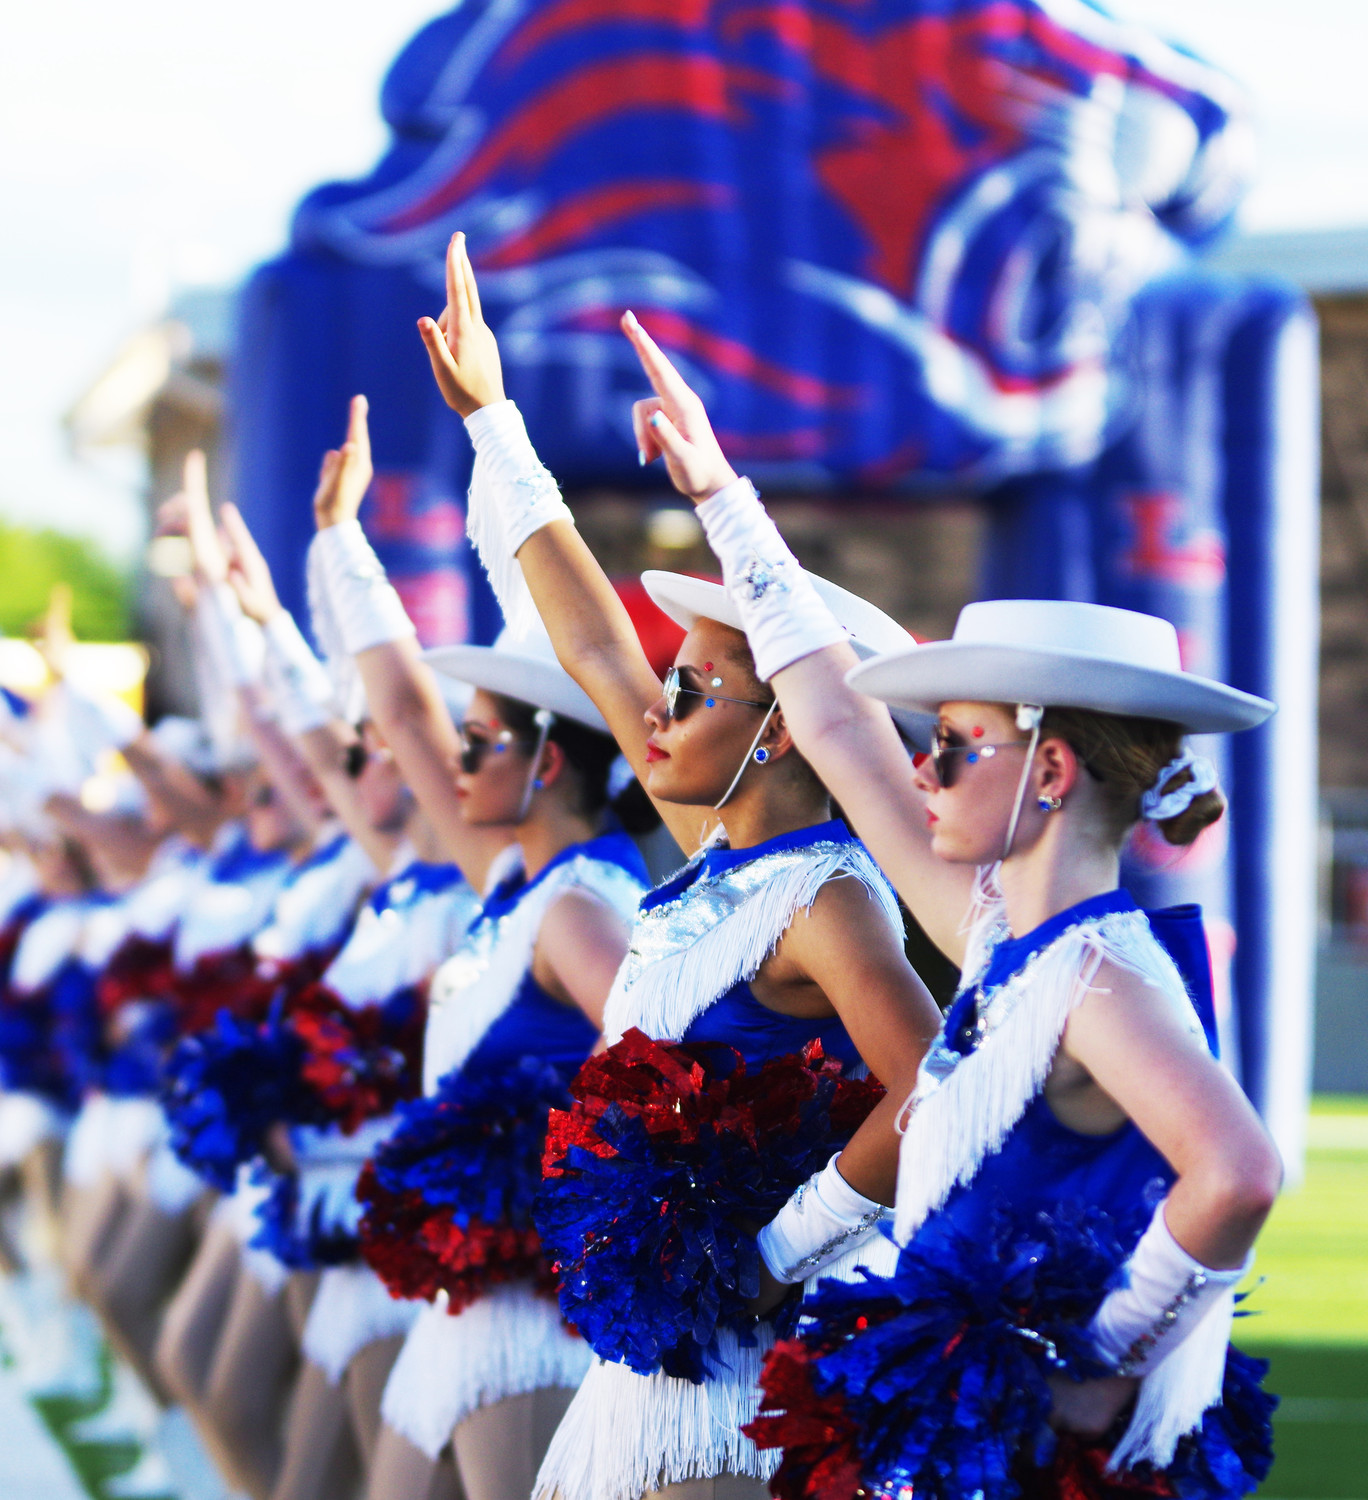 Leander High School Dance Teams salute for the school song at the beginning at the game against Weiss at the Pfield August 30, 2018.